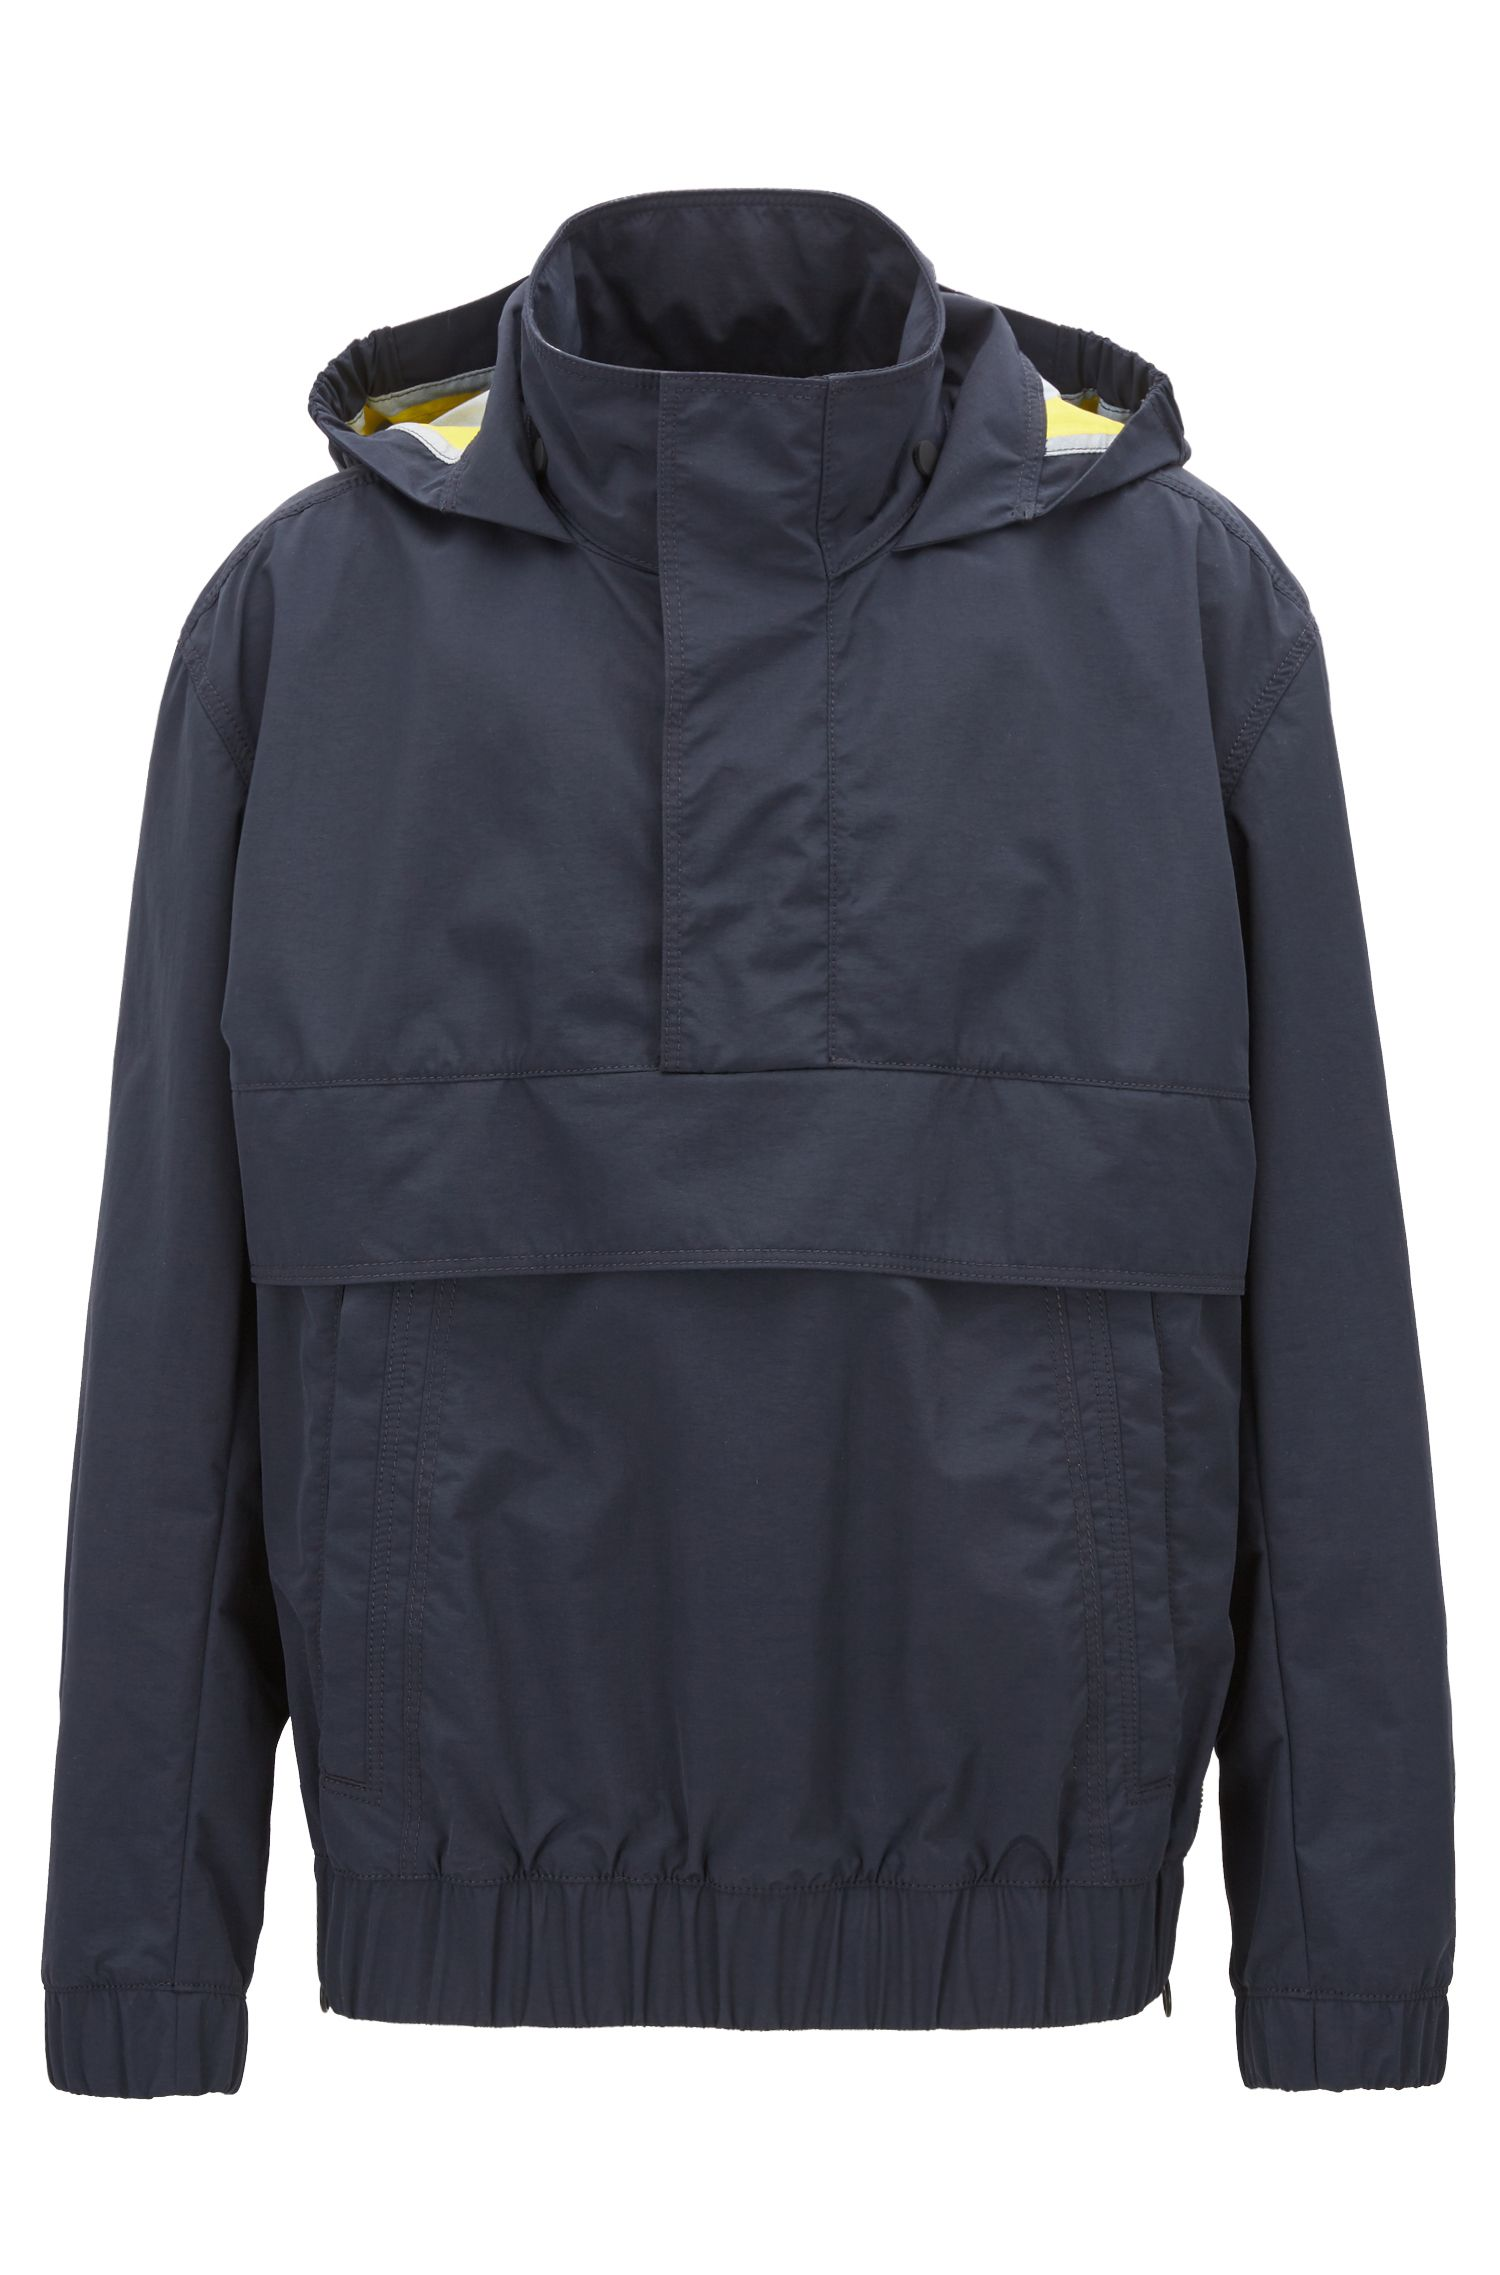 Waterproof overhead jacket in two-layer Italian fabric